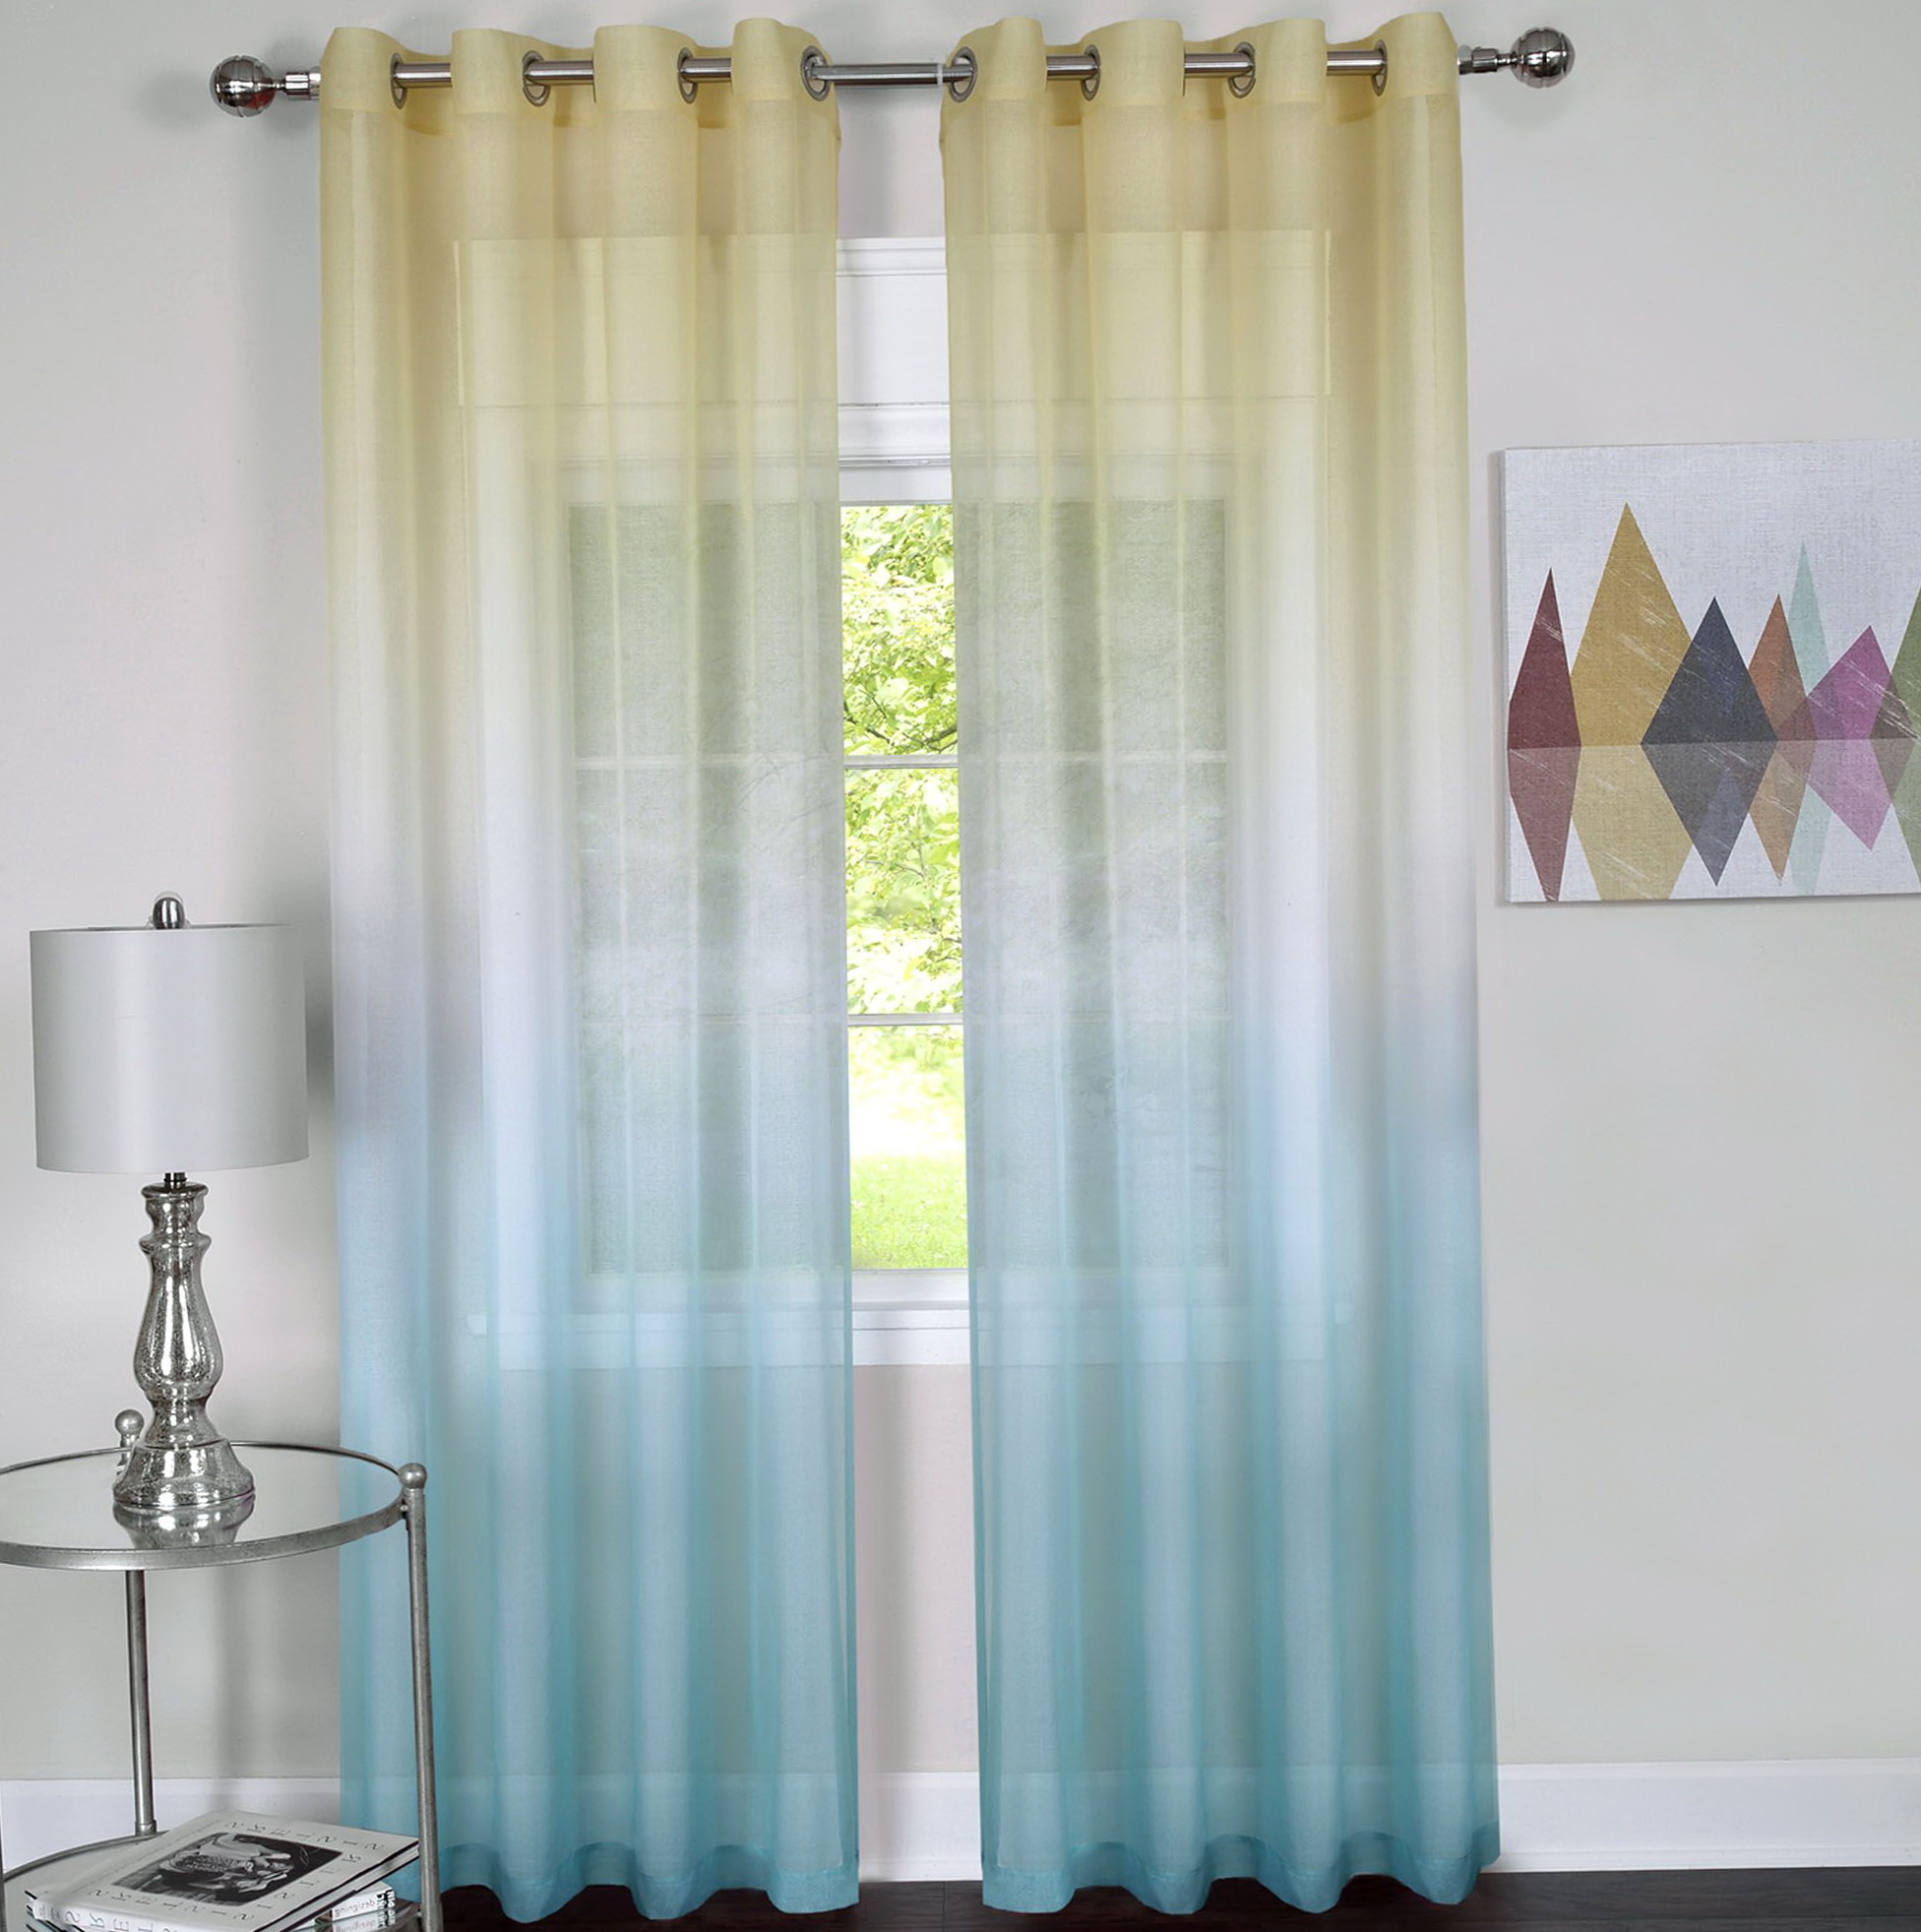 Semi Sheer Curtains With Grommets Home Design Ideas